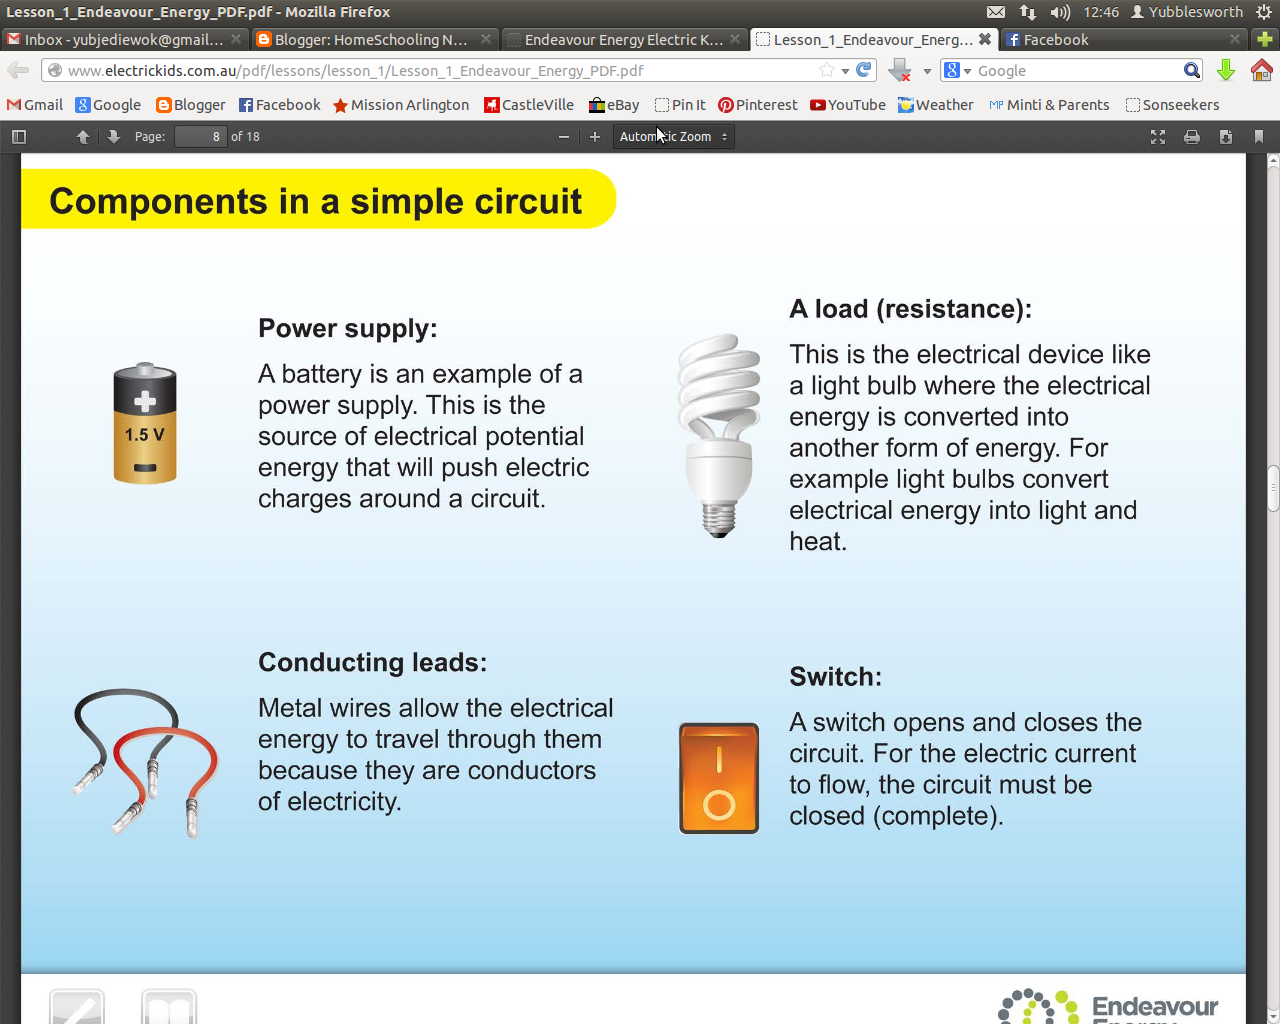 Homeschooling Notepages Simple Electric Circuits Electrical Circuit And The Electrons Are Not Able To Flow Around When Switch Is Turned On It Closes Gap Electricity Move Make